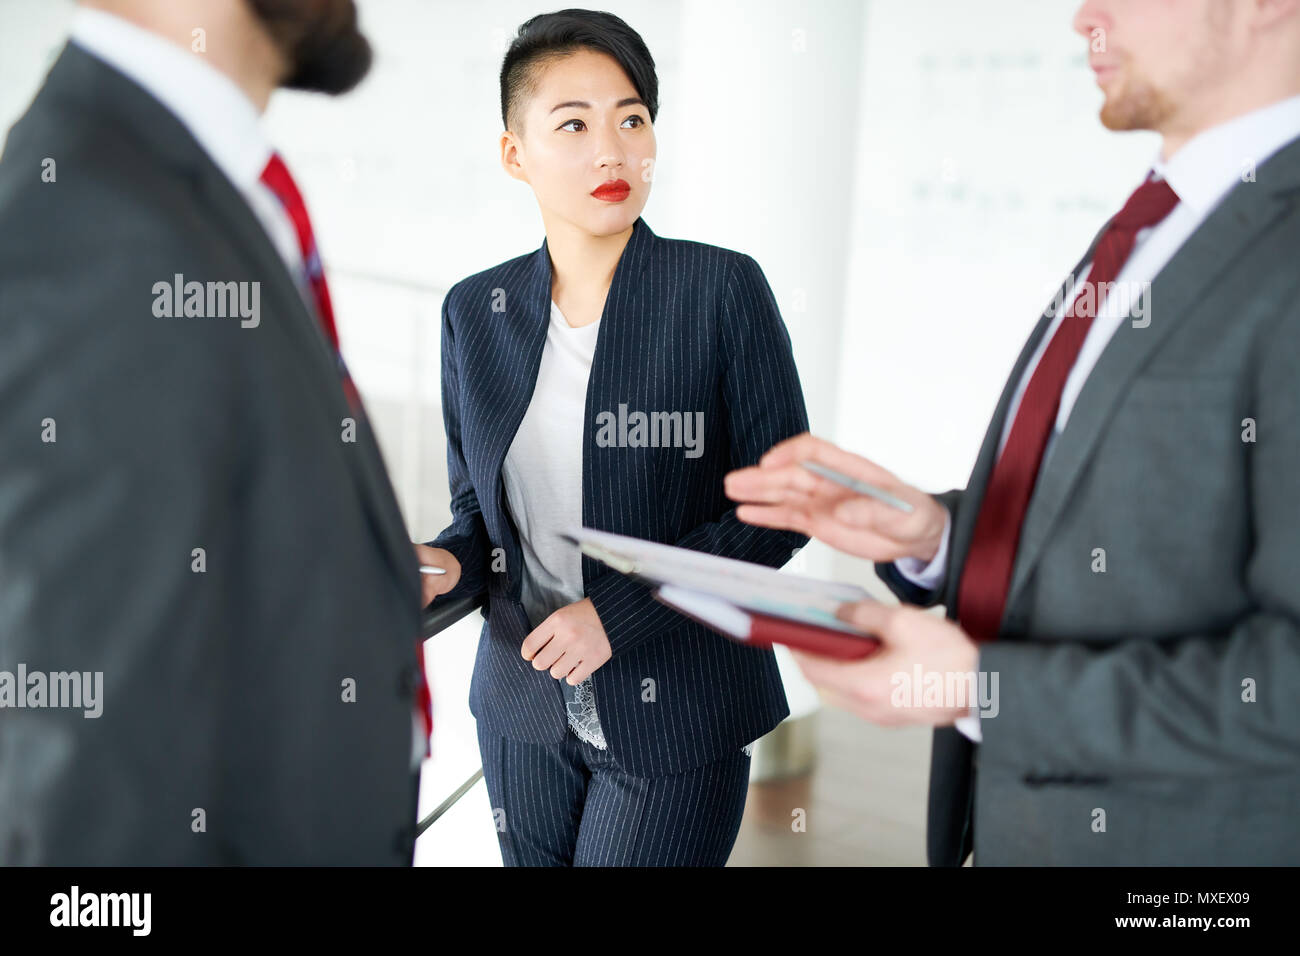 Discussing Joint Project at Office Lobby - Stock Image